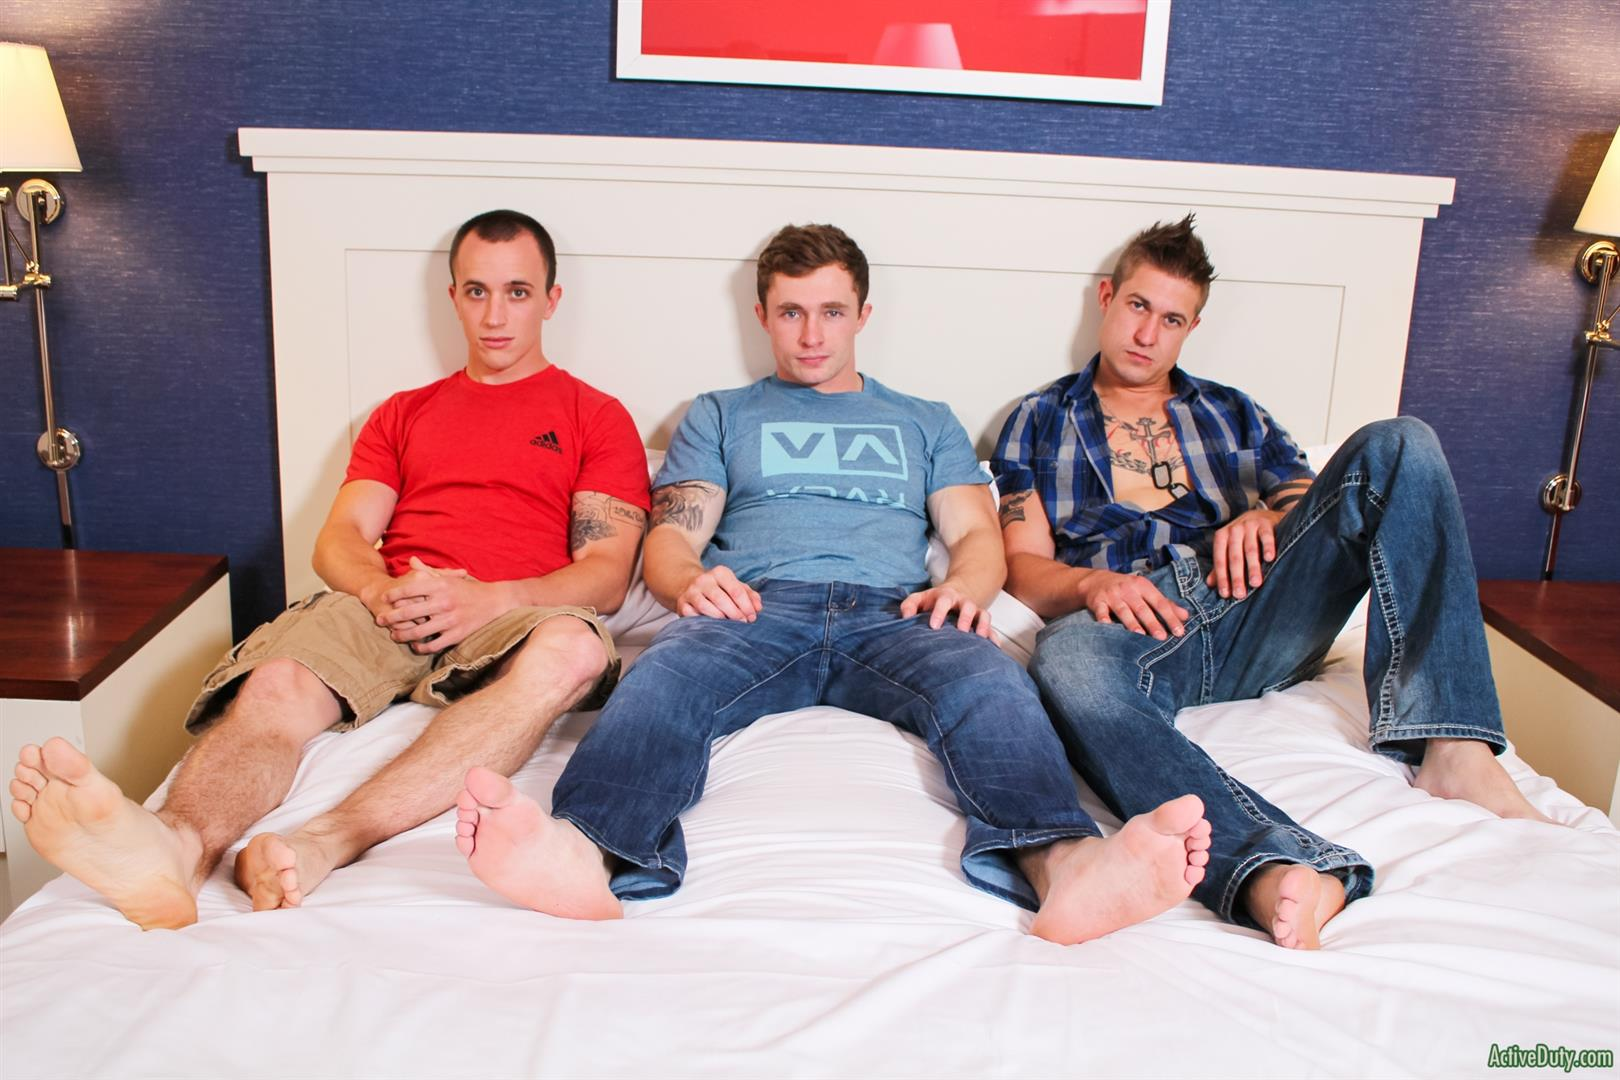 Active-Duty-Threeway-Army-Guys-Bareback-Sex-Video-Amateur-Gay-Porn-05 Big Dick Muscular Army Guys In A Bareback Threeway